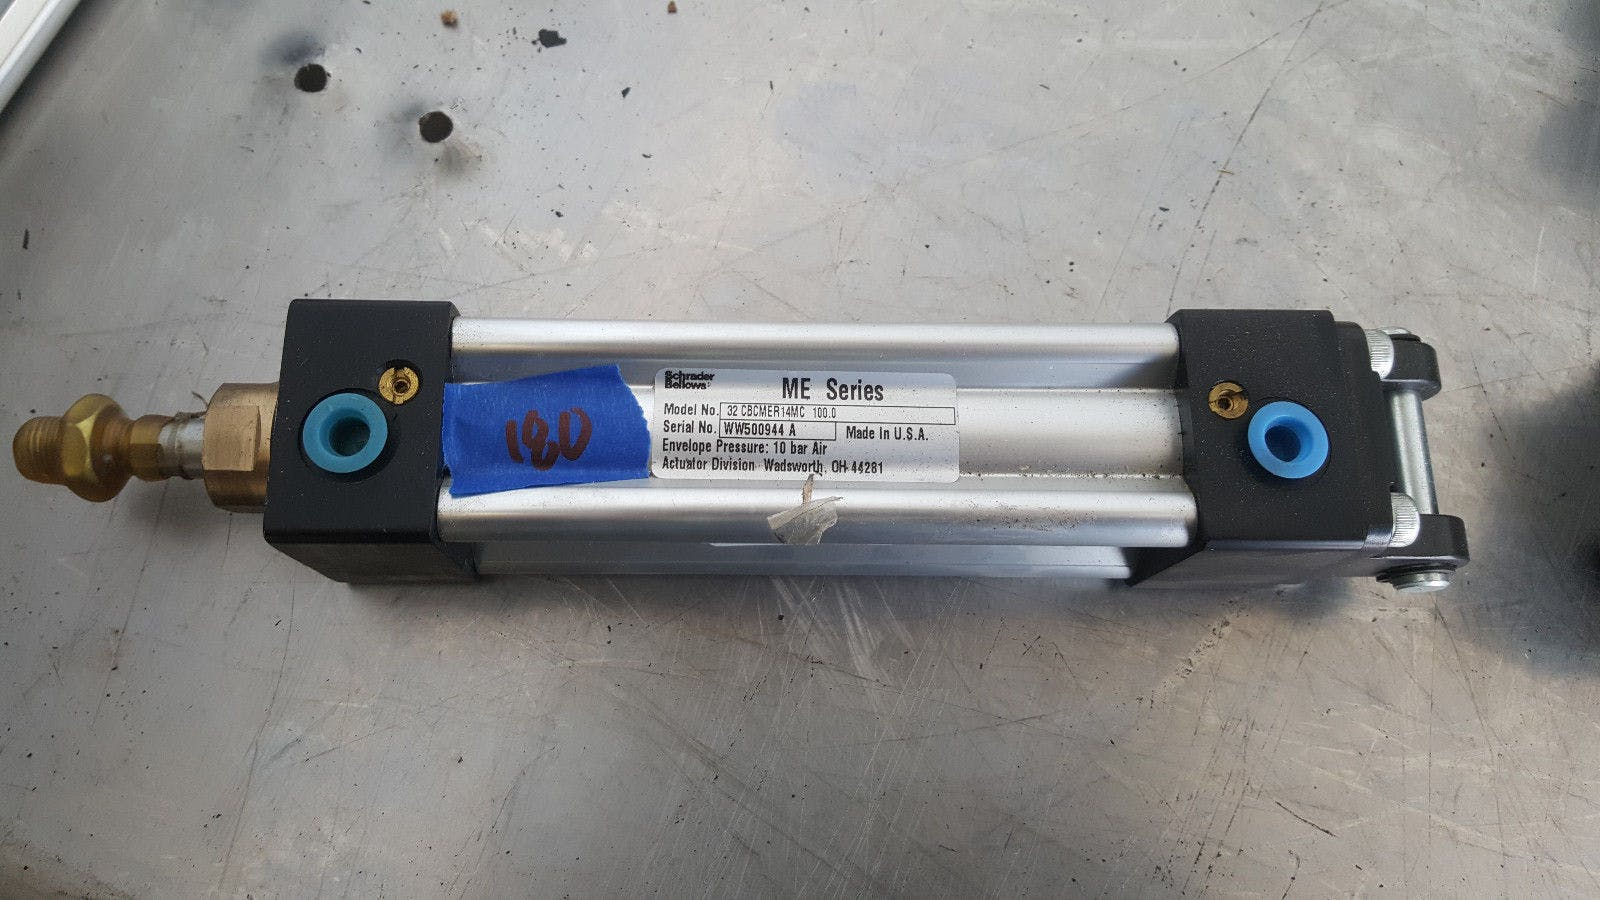 Schrader Bellows ME 32 CBCMER14MC 100.000 10 Bar Air Pneumatic Cylinder - sold by Jak's Restaurant Supply